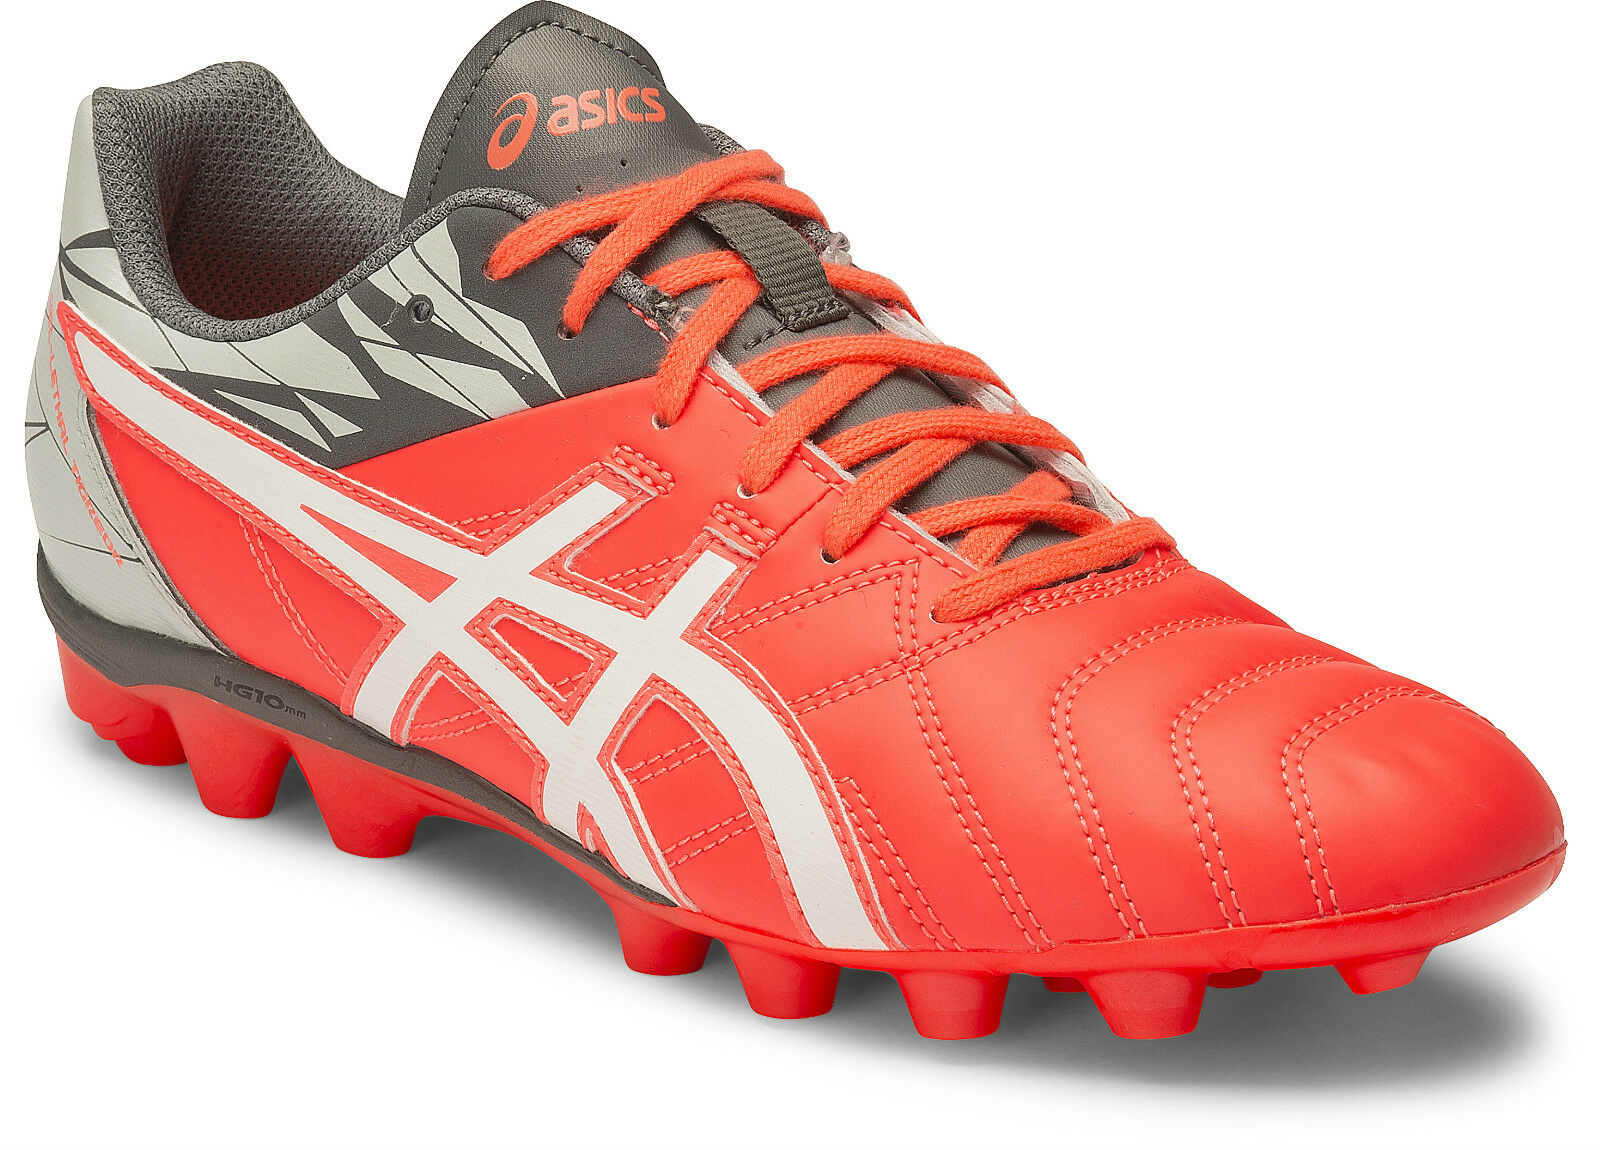 Asics Lethal Tigreor 9 IT GS Kids Football Boots (0601)   Save